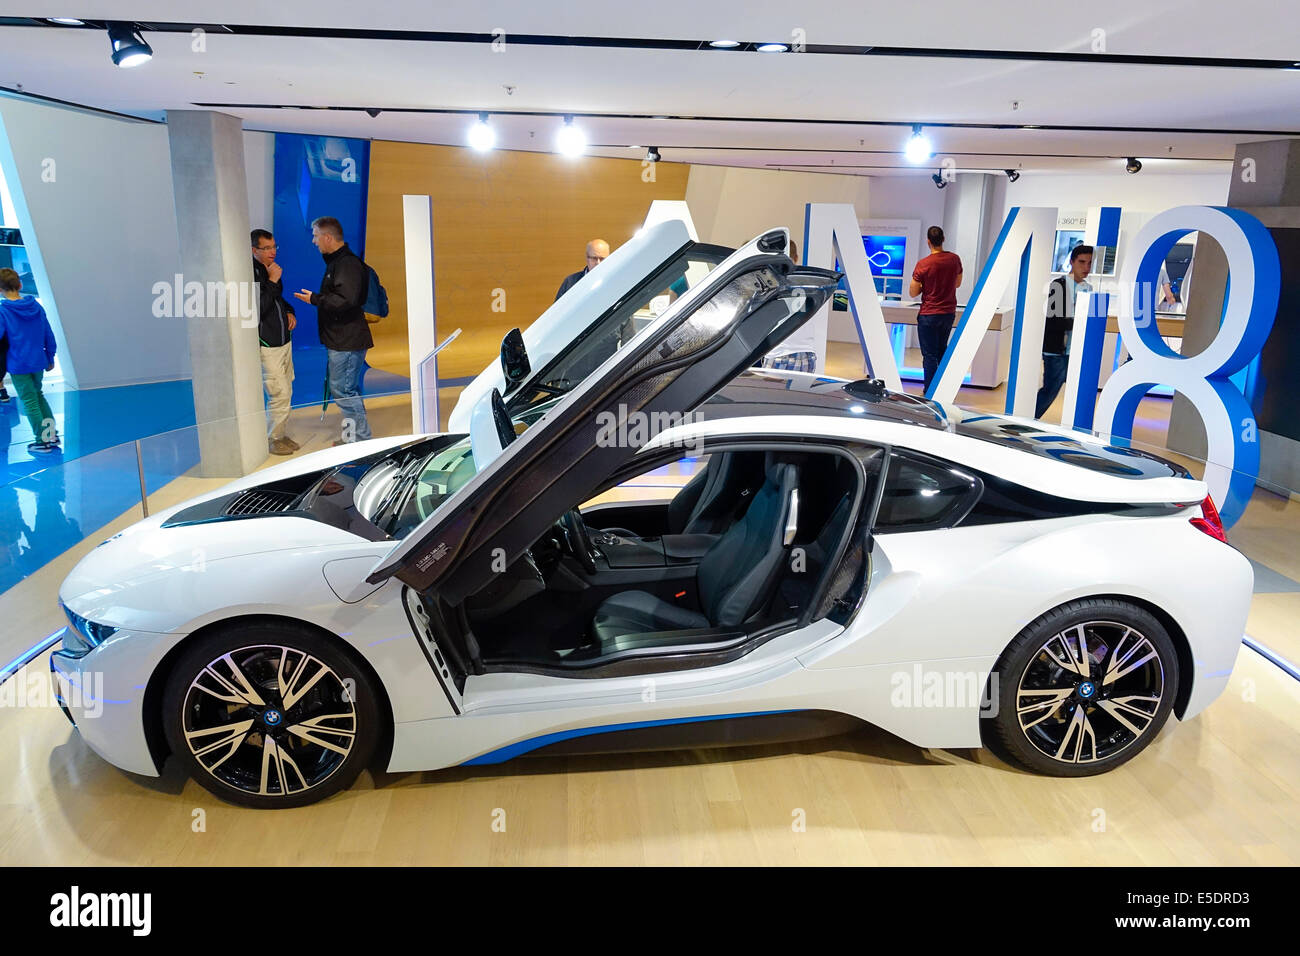 modern luxury sports car with plug in hybrid system bmw i8 stock photo royalty free image. Black Bedroom Furniture Sets. Home Design Ideas